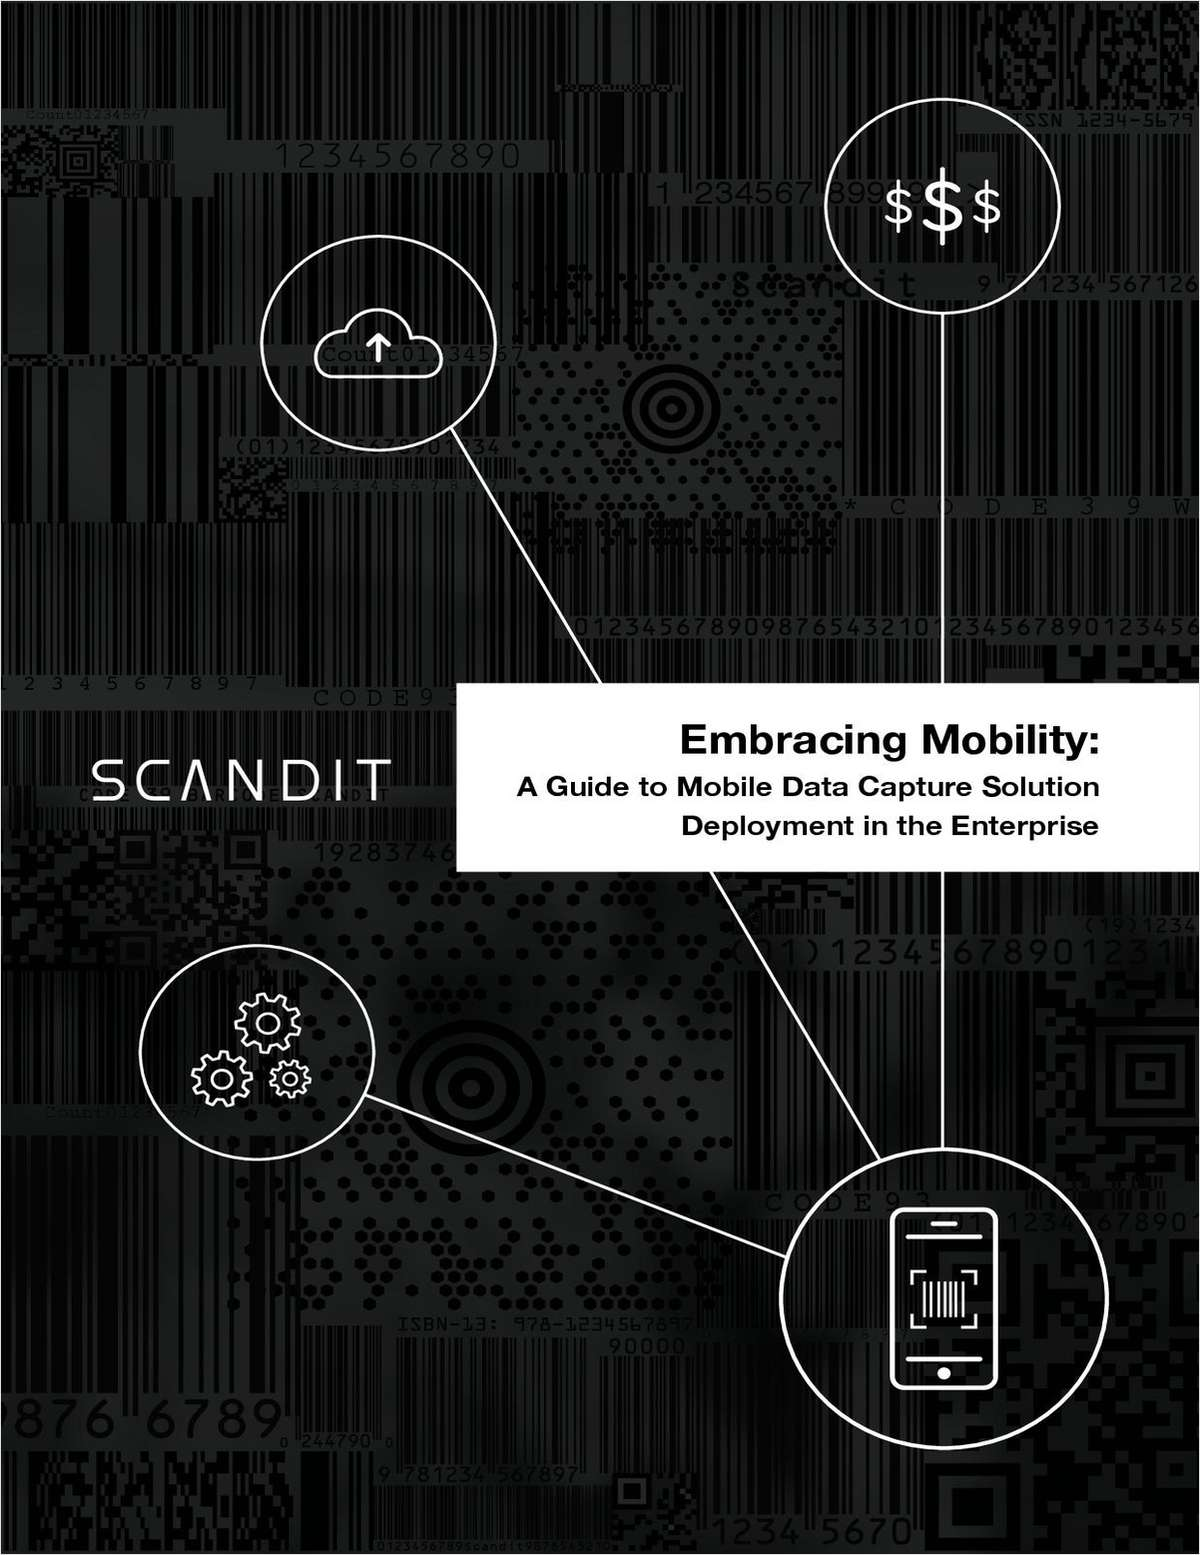 Embracing Mobility: A Guide to Mobile Data Capture Solution Deployment in the Enterprise